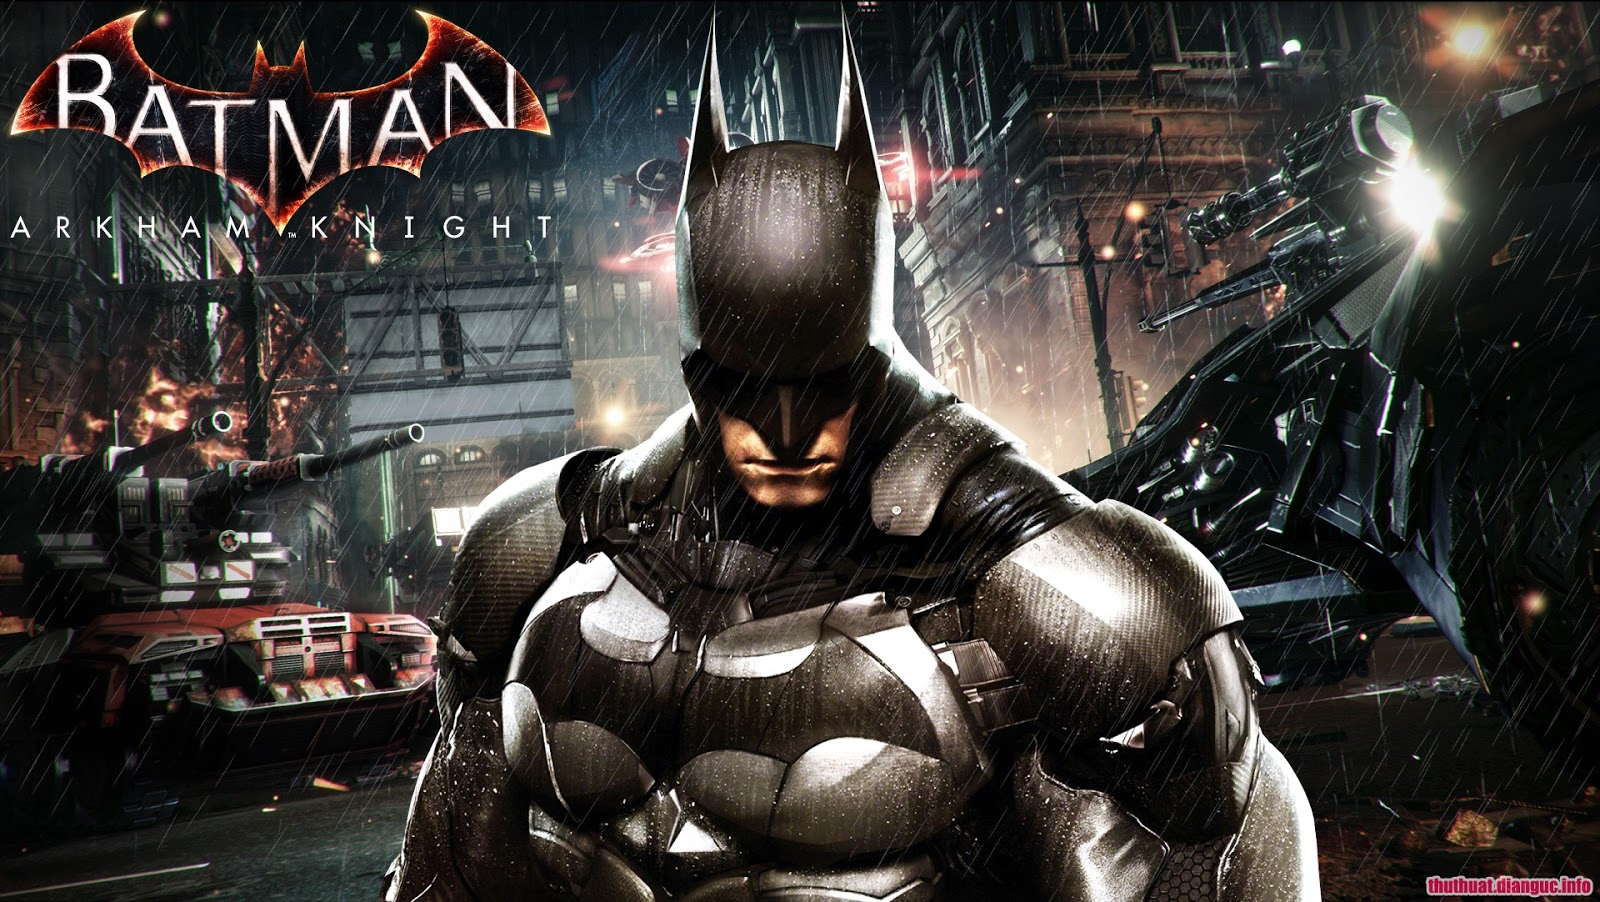 Download Game Batman Arkham Knight Full Cr@ck